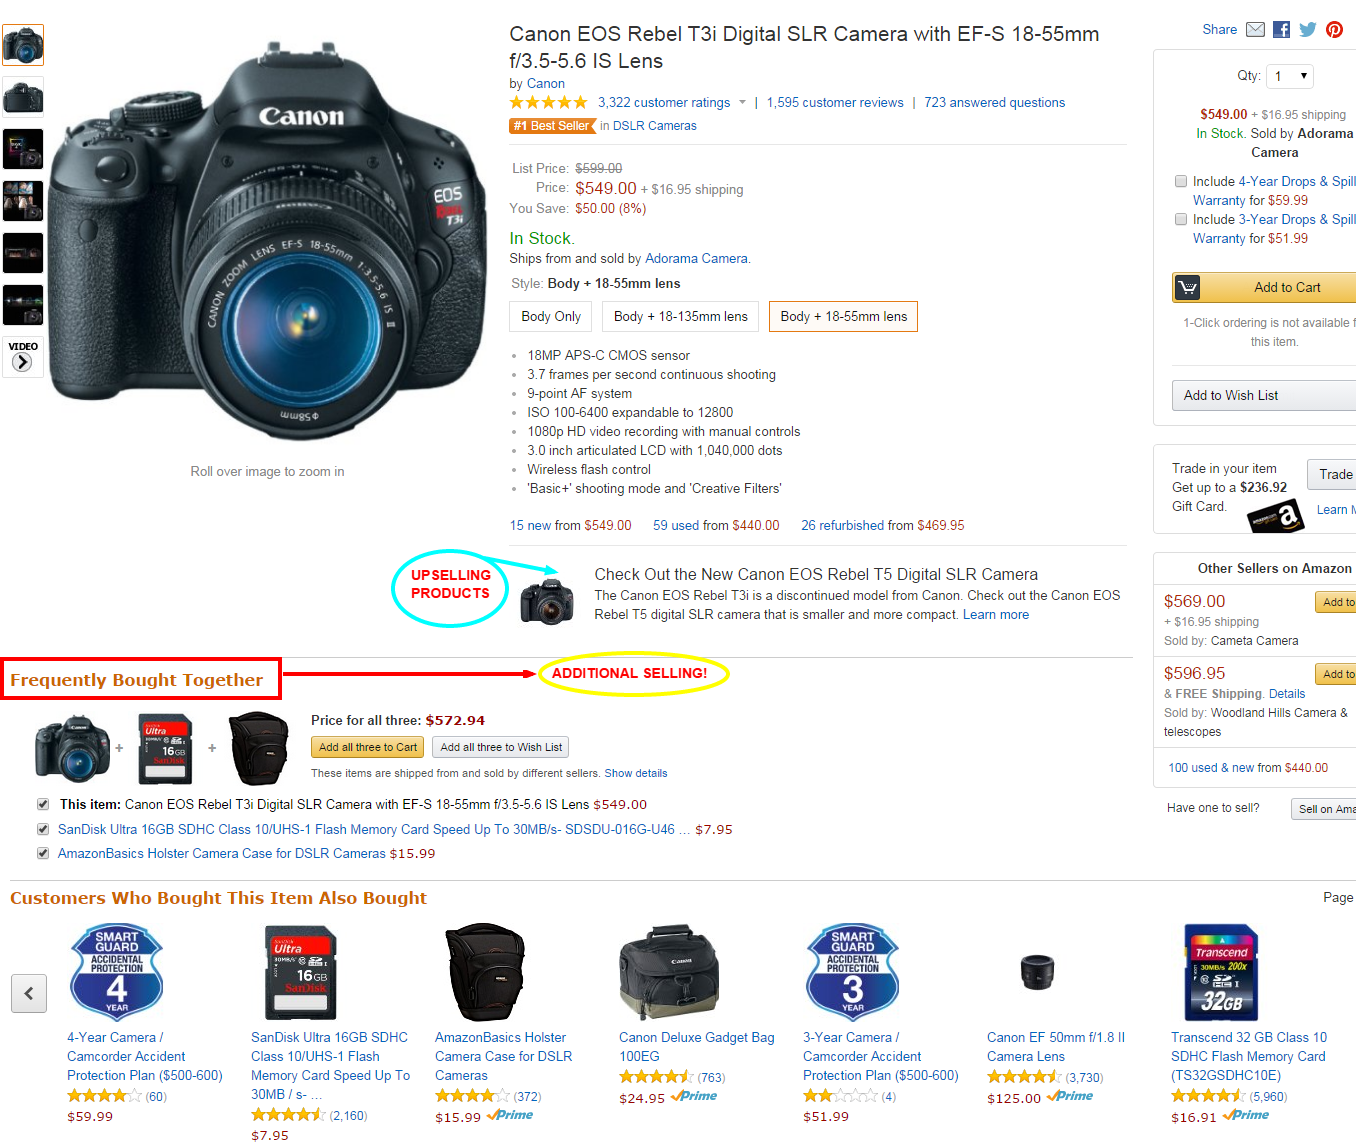 boost sales in e-commerce business - amazon product listing details